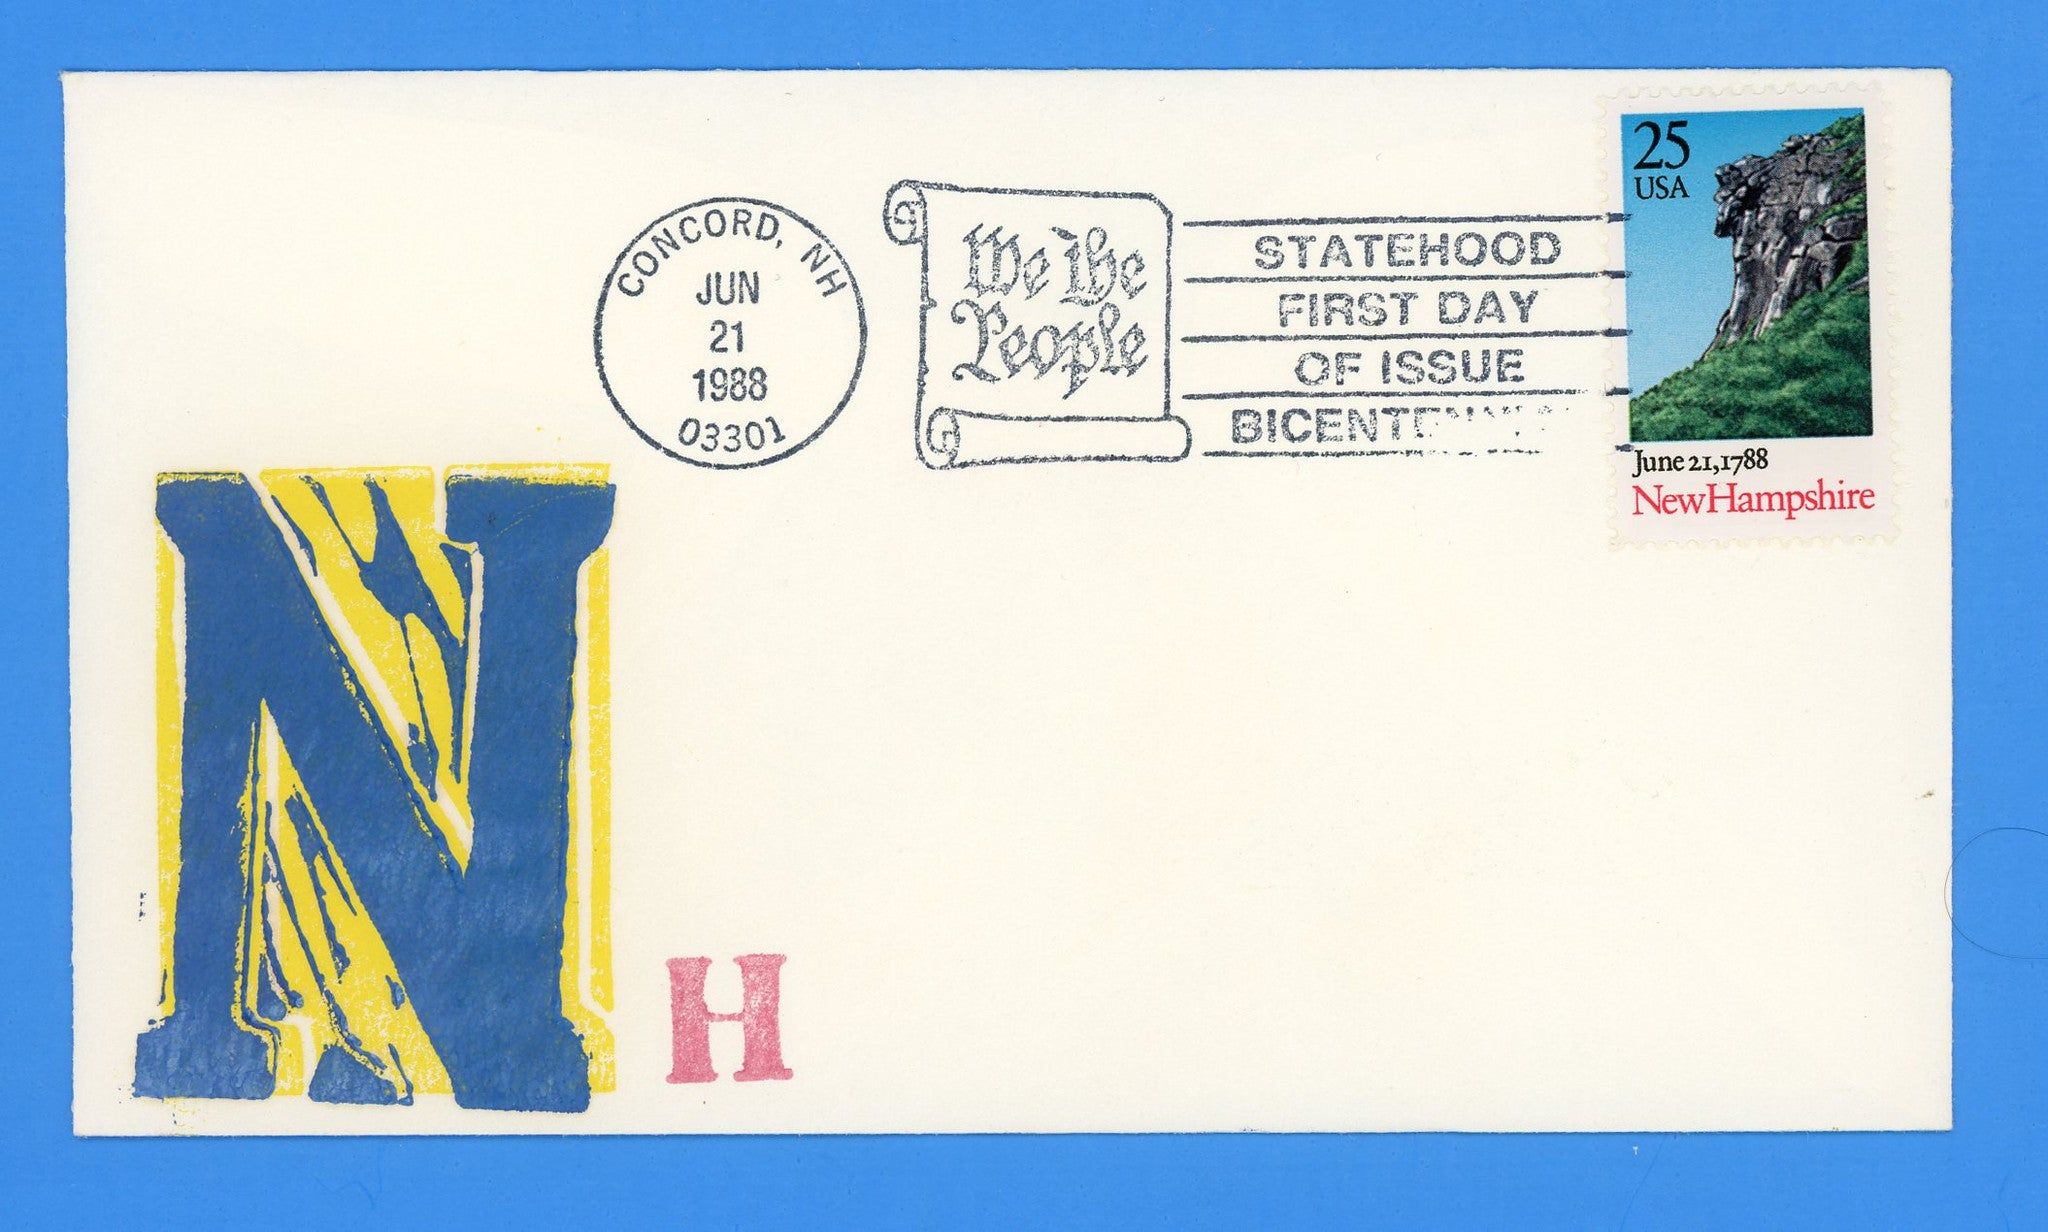 New Hampshire Statehood First Day Cover